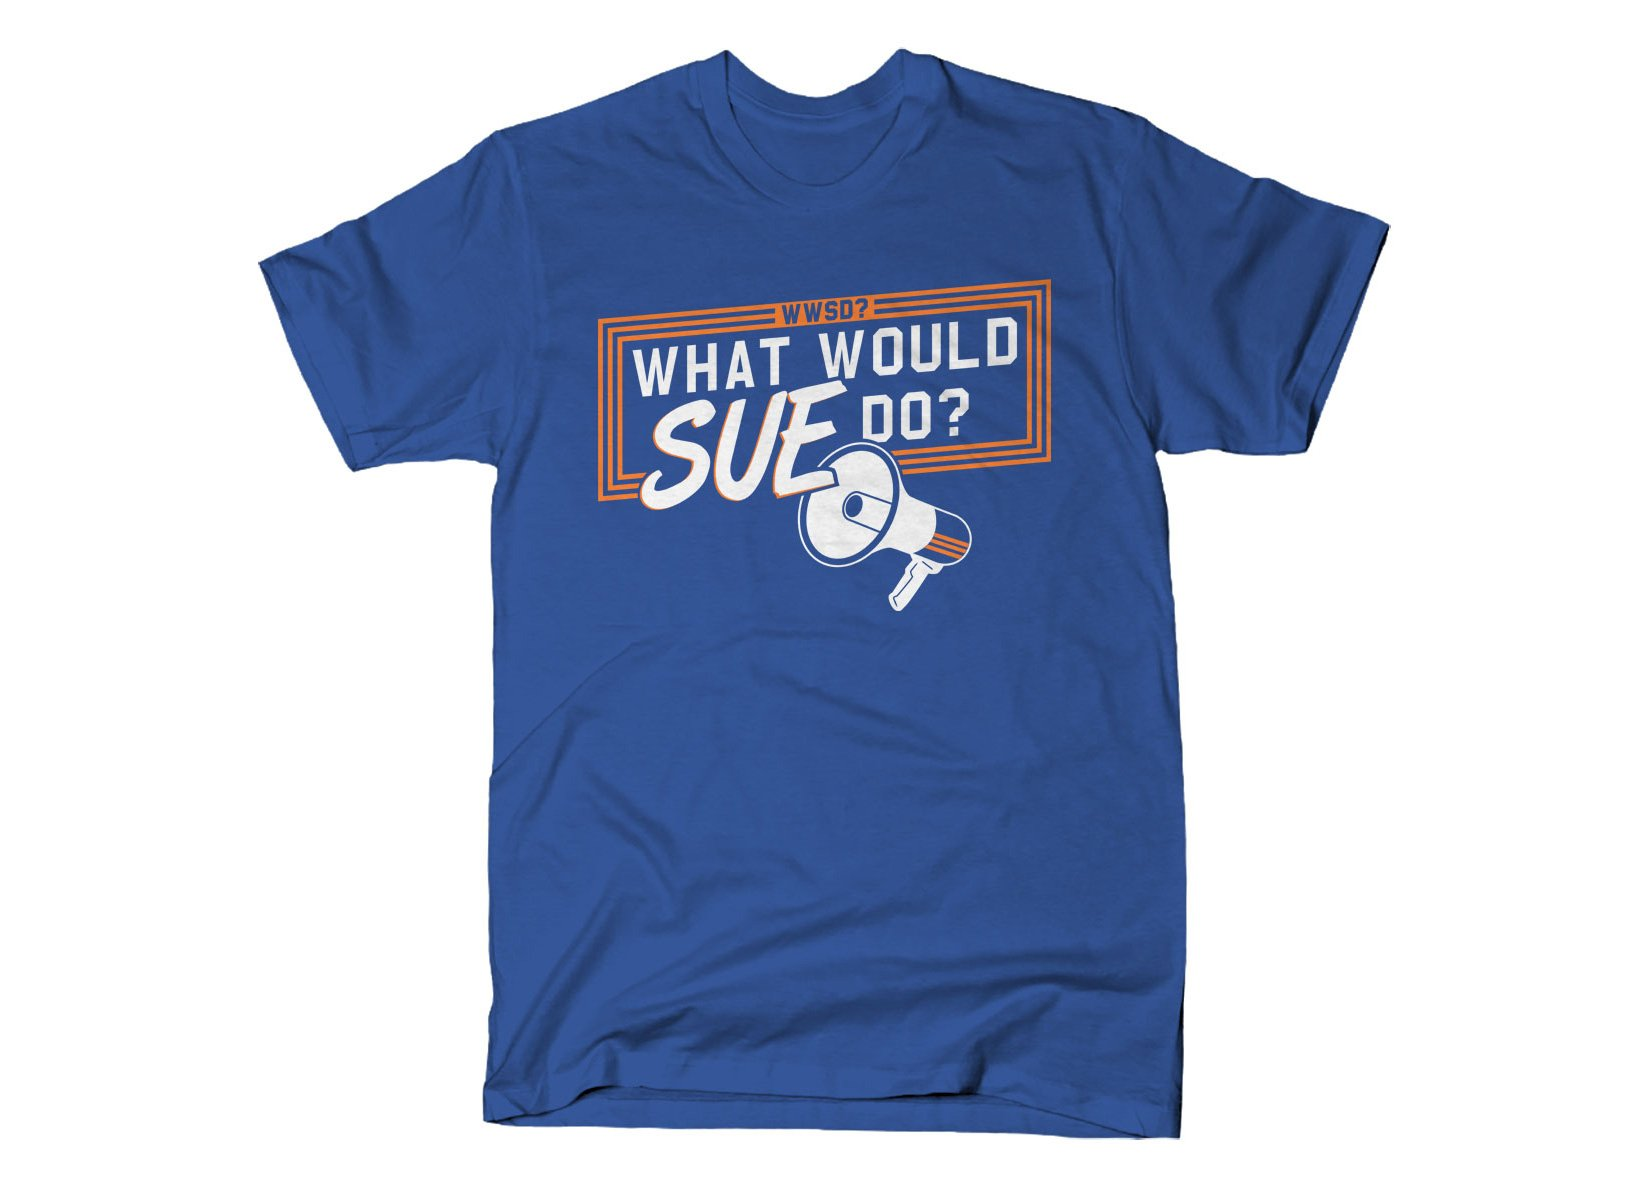 What Would Sue Do? on Mens T-Shirt